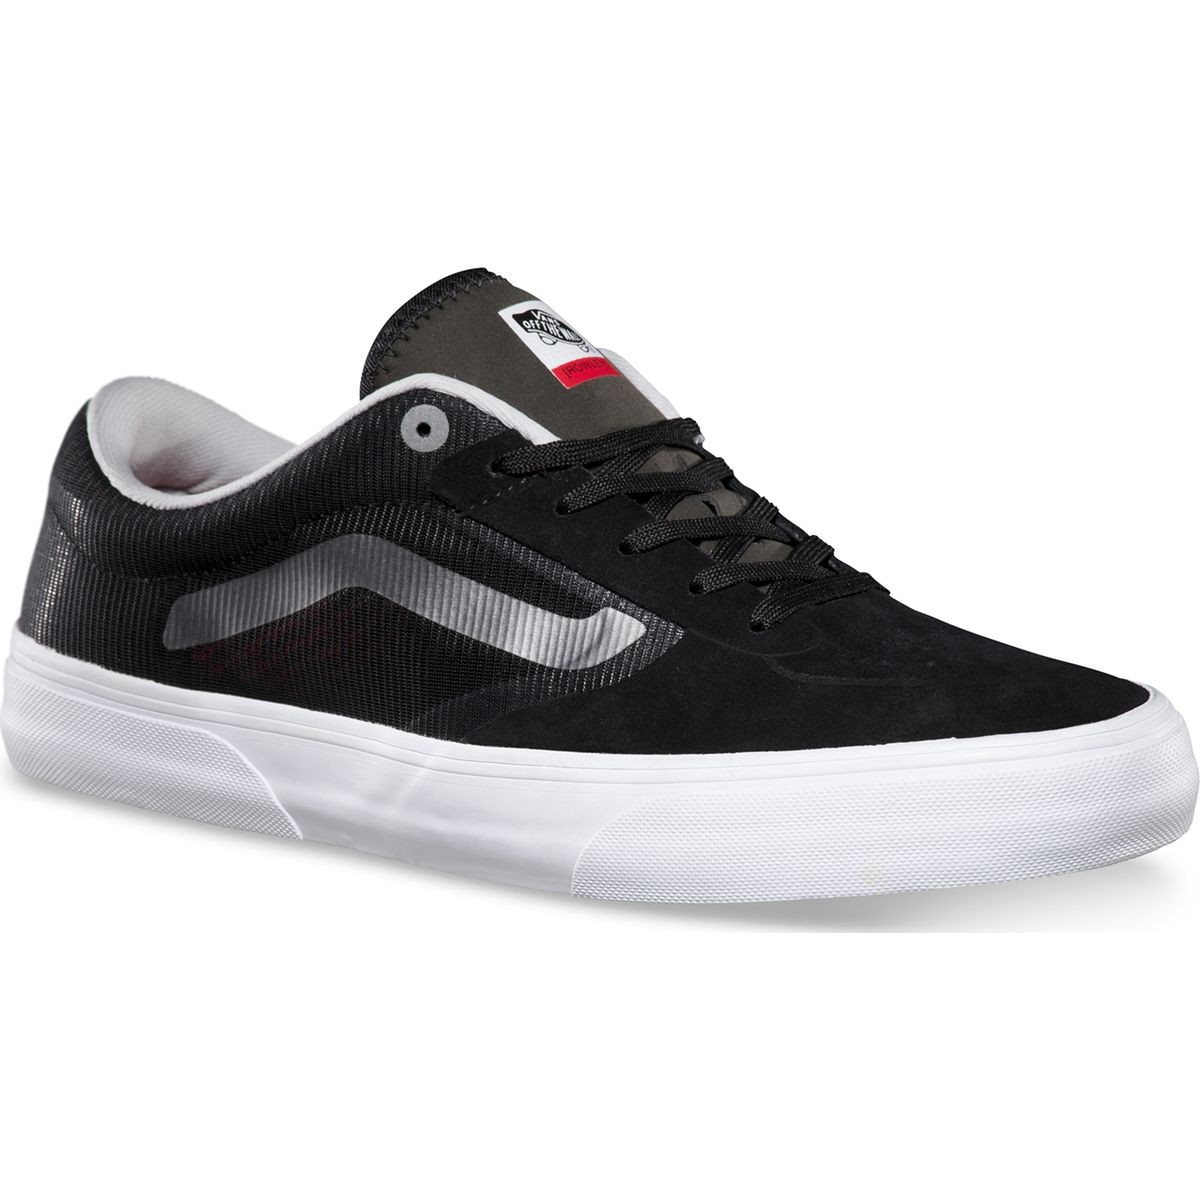 Vans Rowley Pro Lite Shoes - Black 13.0